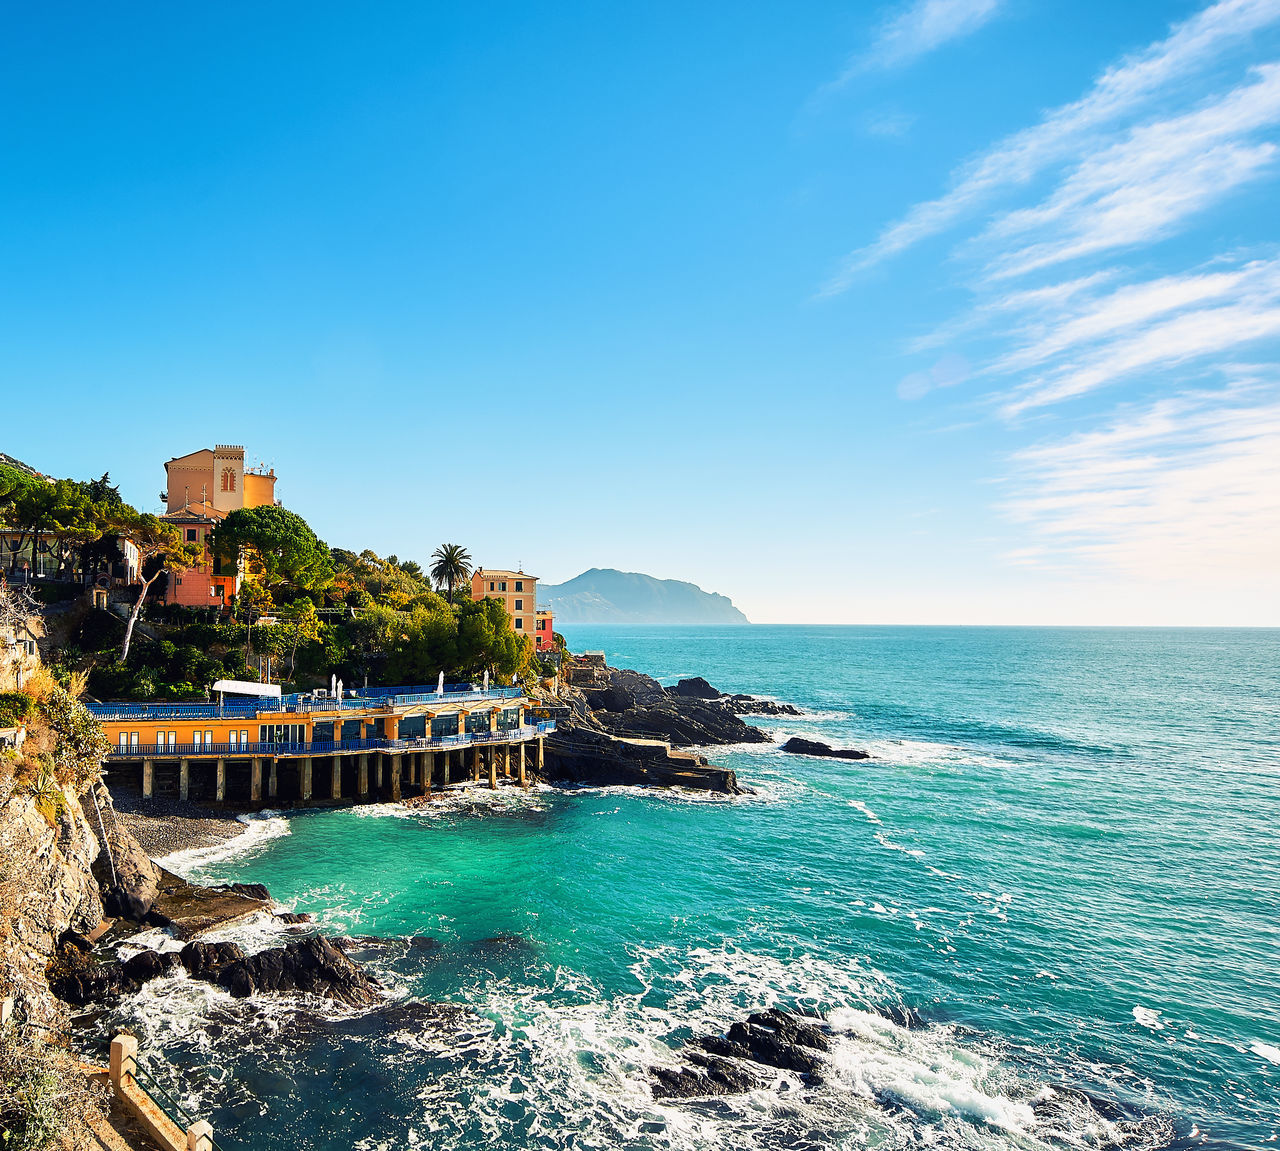 Italian Riviera Architecture Beauty In Nature Coastal Coastline Europe Hills Horizon Over Water Italian Riviera Italy Landscape Mediterranean Sea Nature Outdoors Scenics Seascape Sky Sunny Day Tourism Tourist Resort Travel Destinations Turquoise Water Vacations